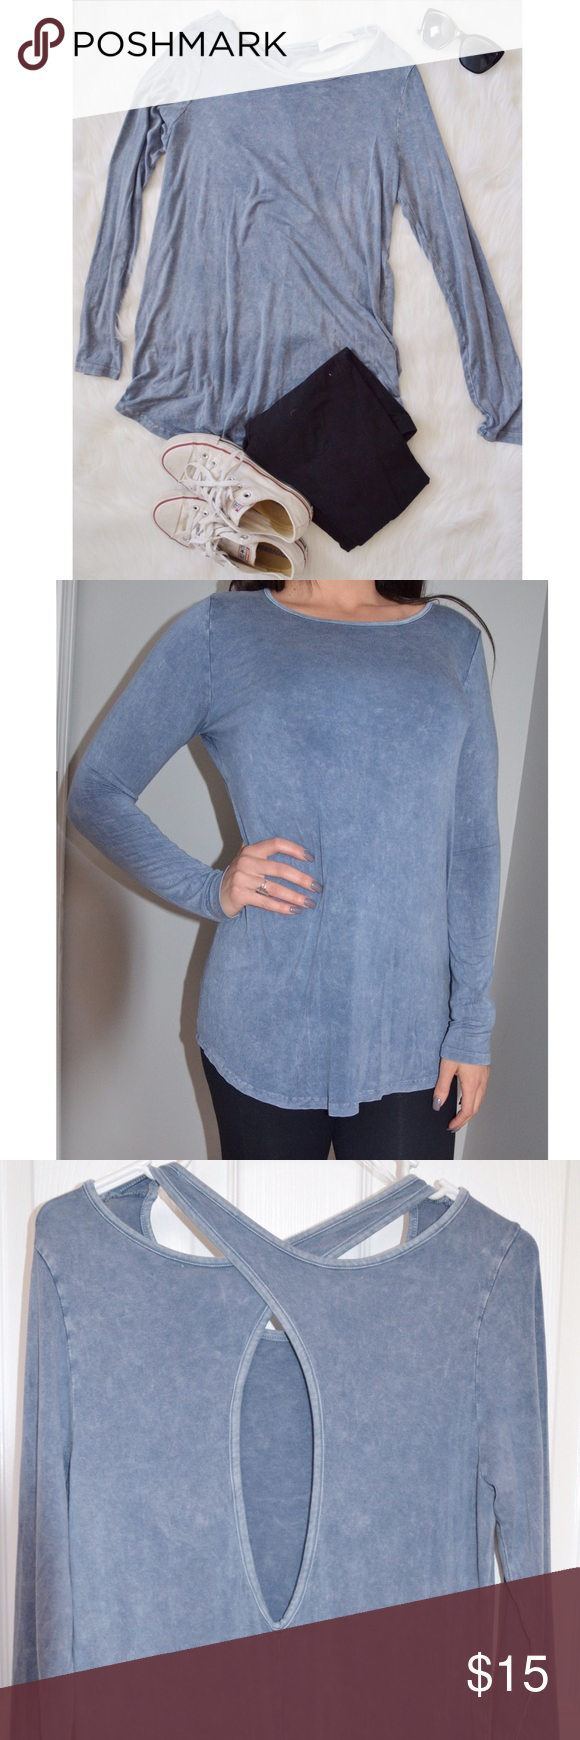 """✨Women's MUST HAVE Soft Blue Silky Top✨ This shirt is SO soft! Lightweight, breathable fabric. Comfortable with a """"peekaboo"""" design on the back. Super cute with a casual chic look. Size MD. Model in picture is SM wearing size MD. Peach Love Tops Tunics"""